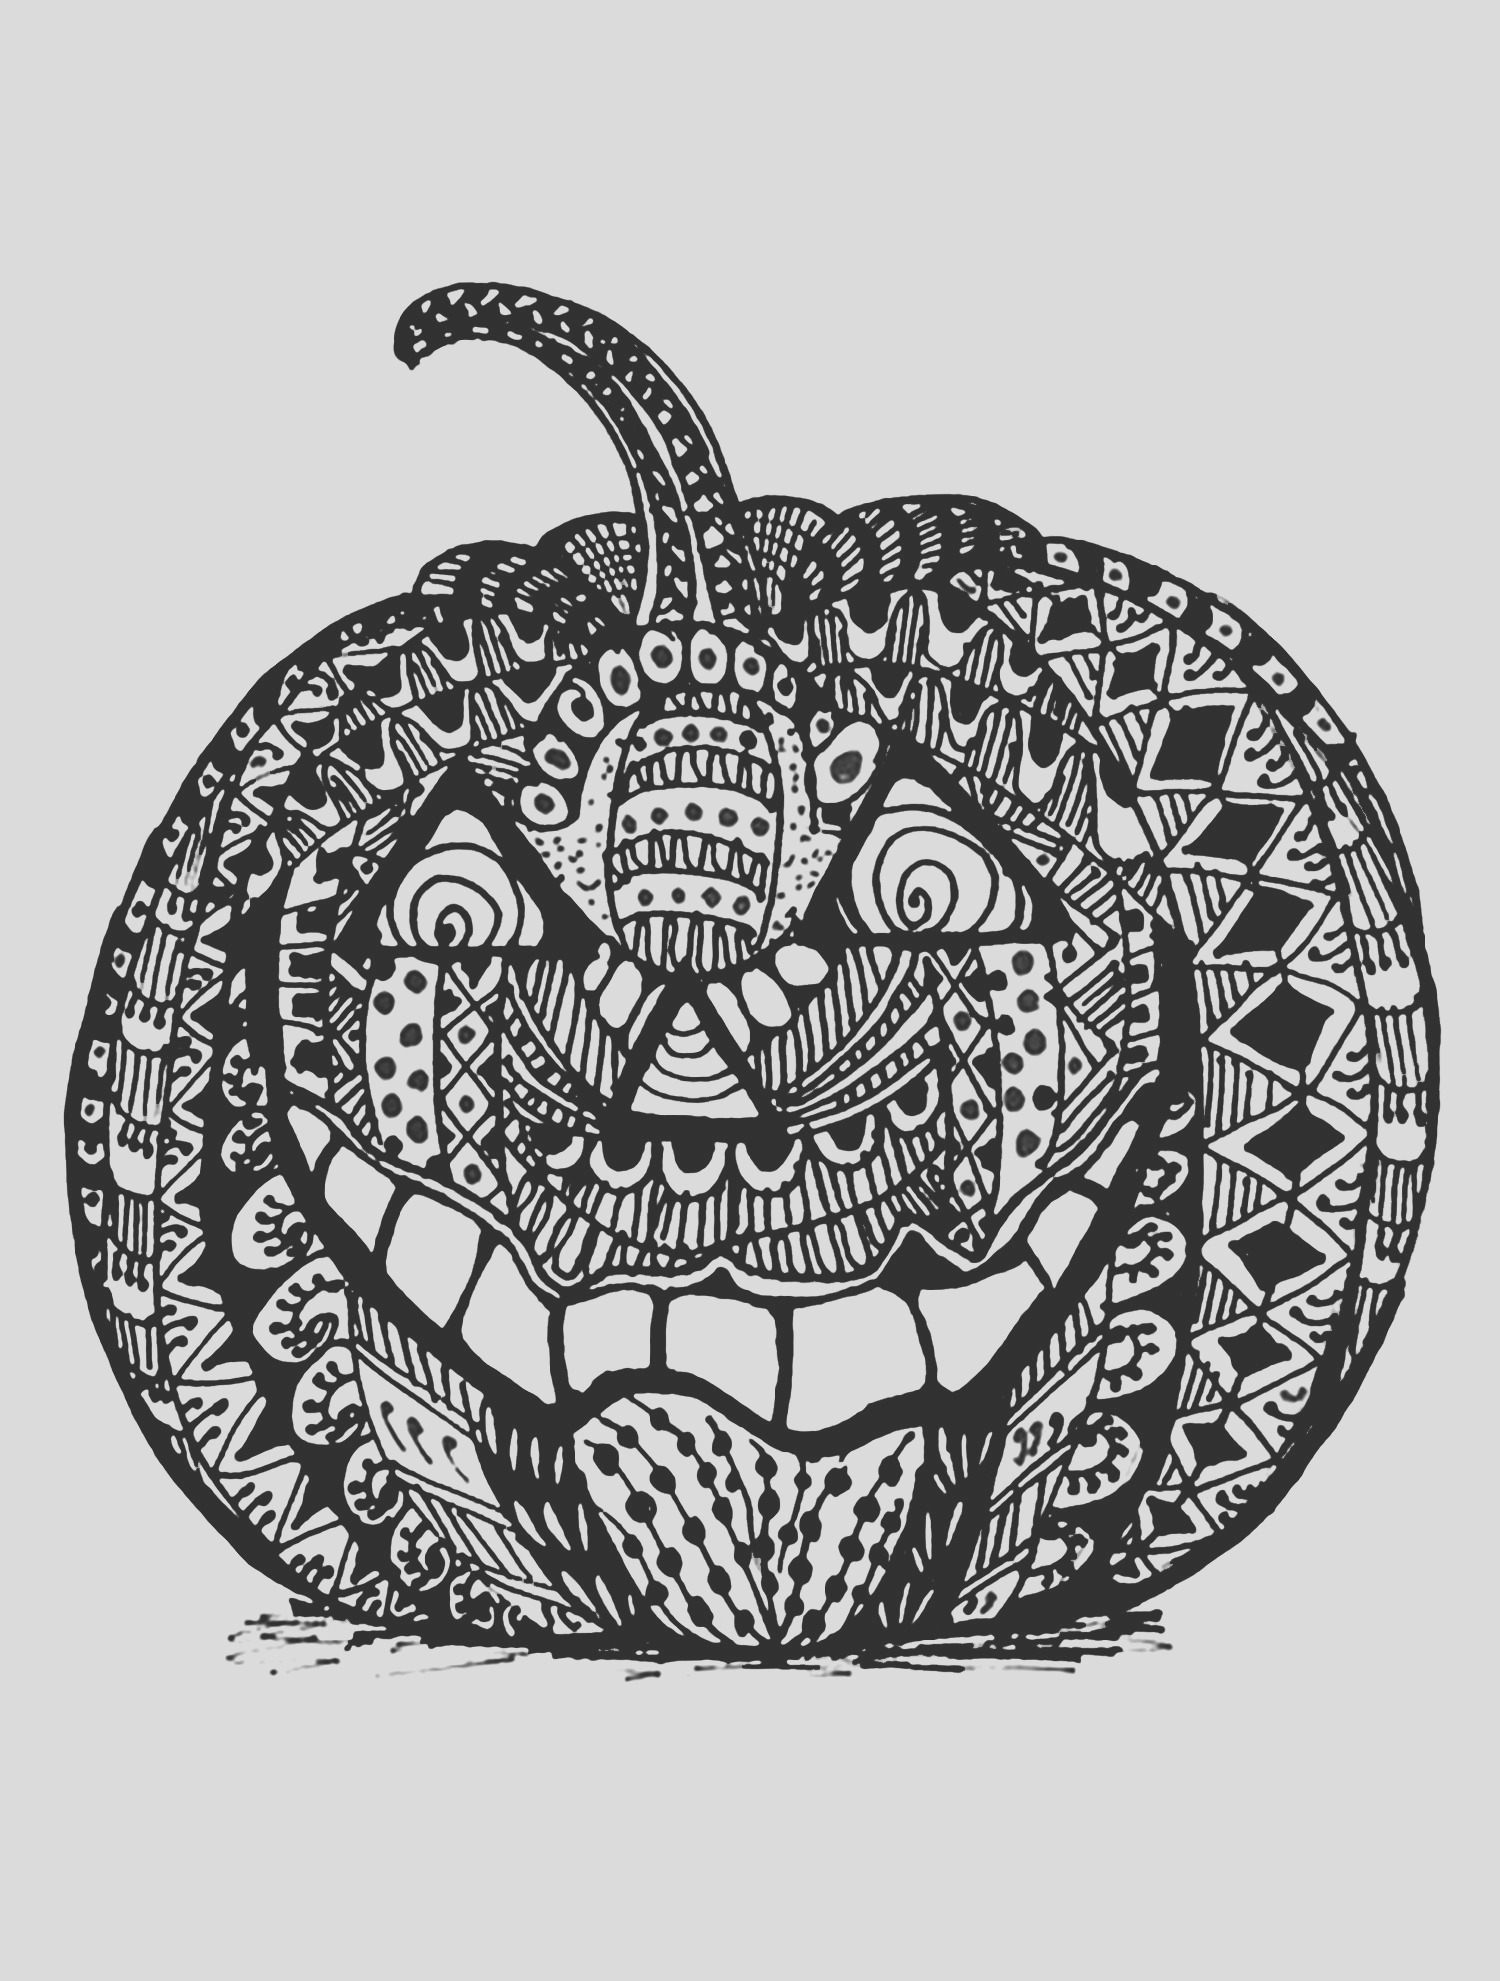 halloween adult coloring pages image=events halloween coloring adult halloween zentangle pumpkin 1